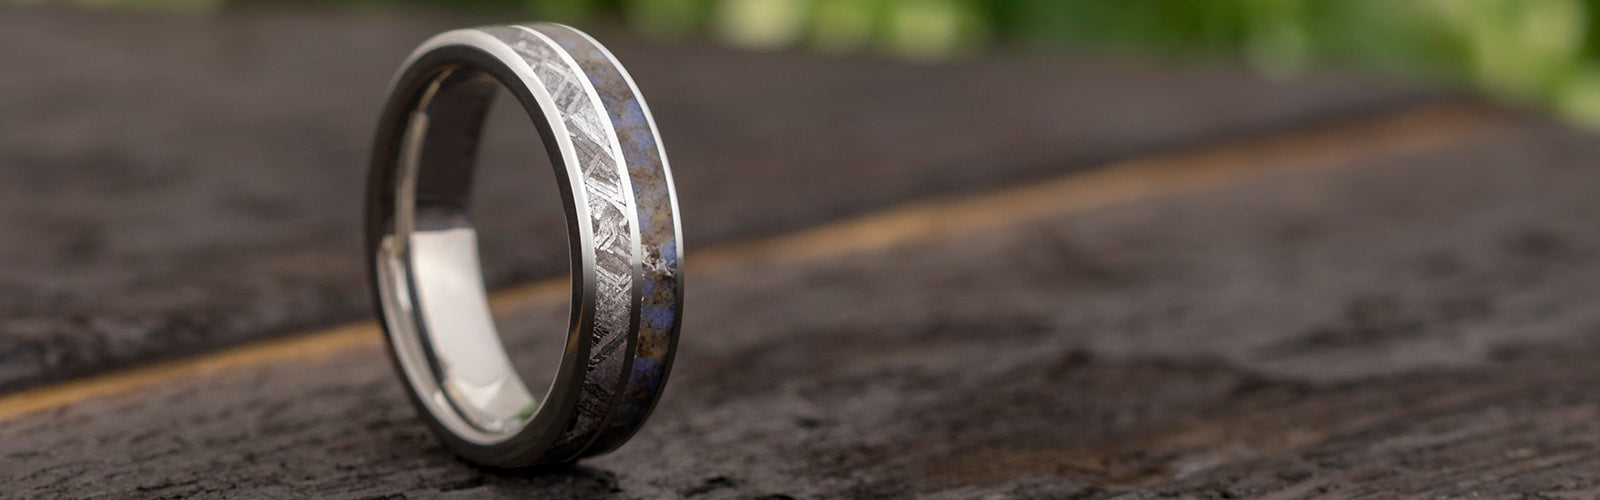 Double-Inlay Wedding Bands